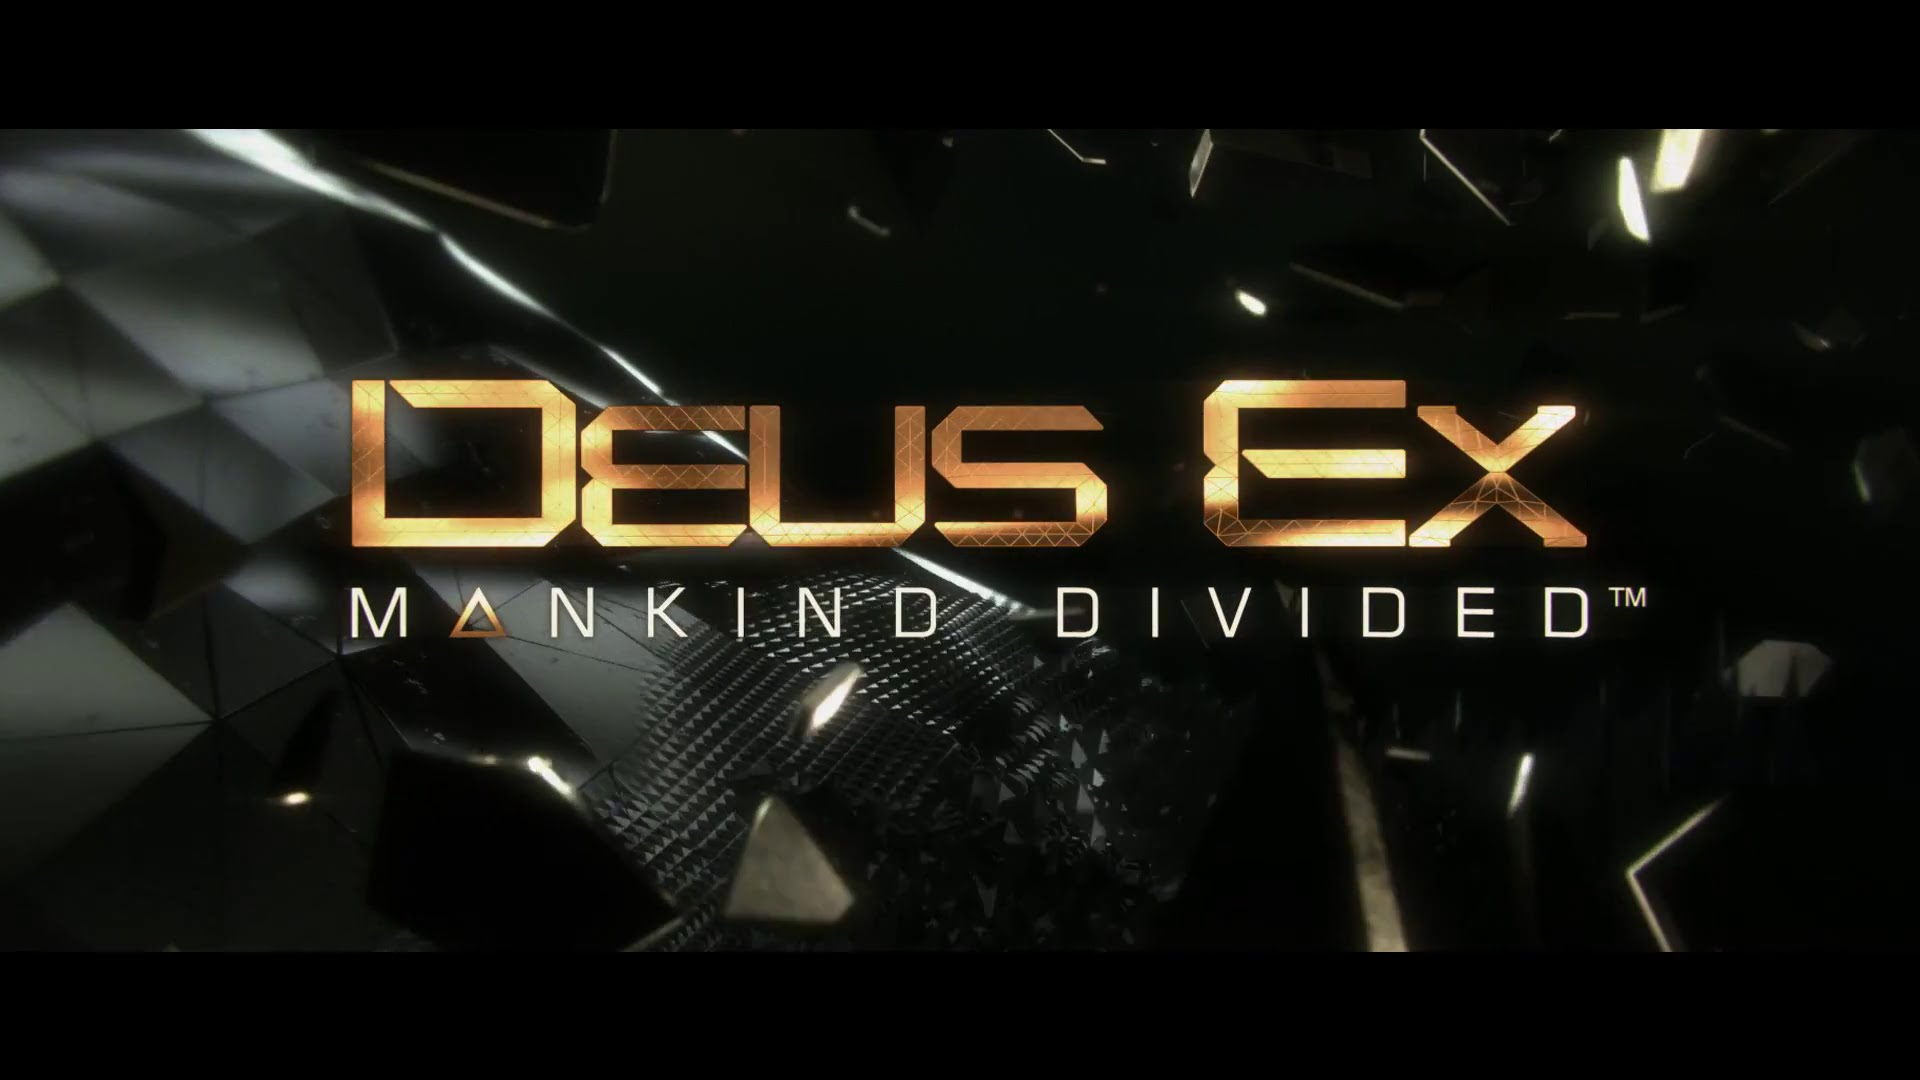 Deus Ex Mankind Devided CDKey Steamkey Download